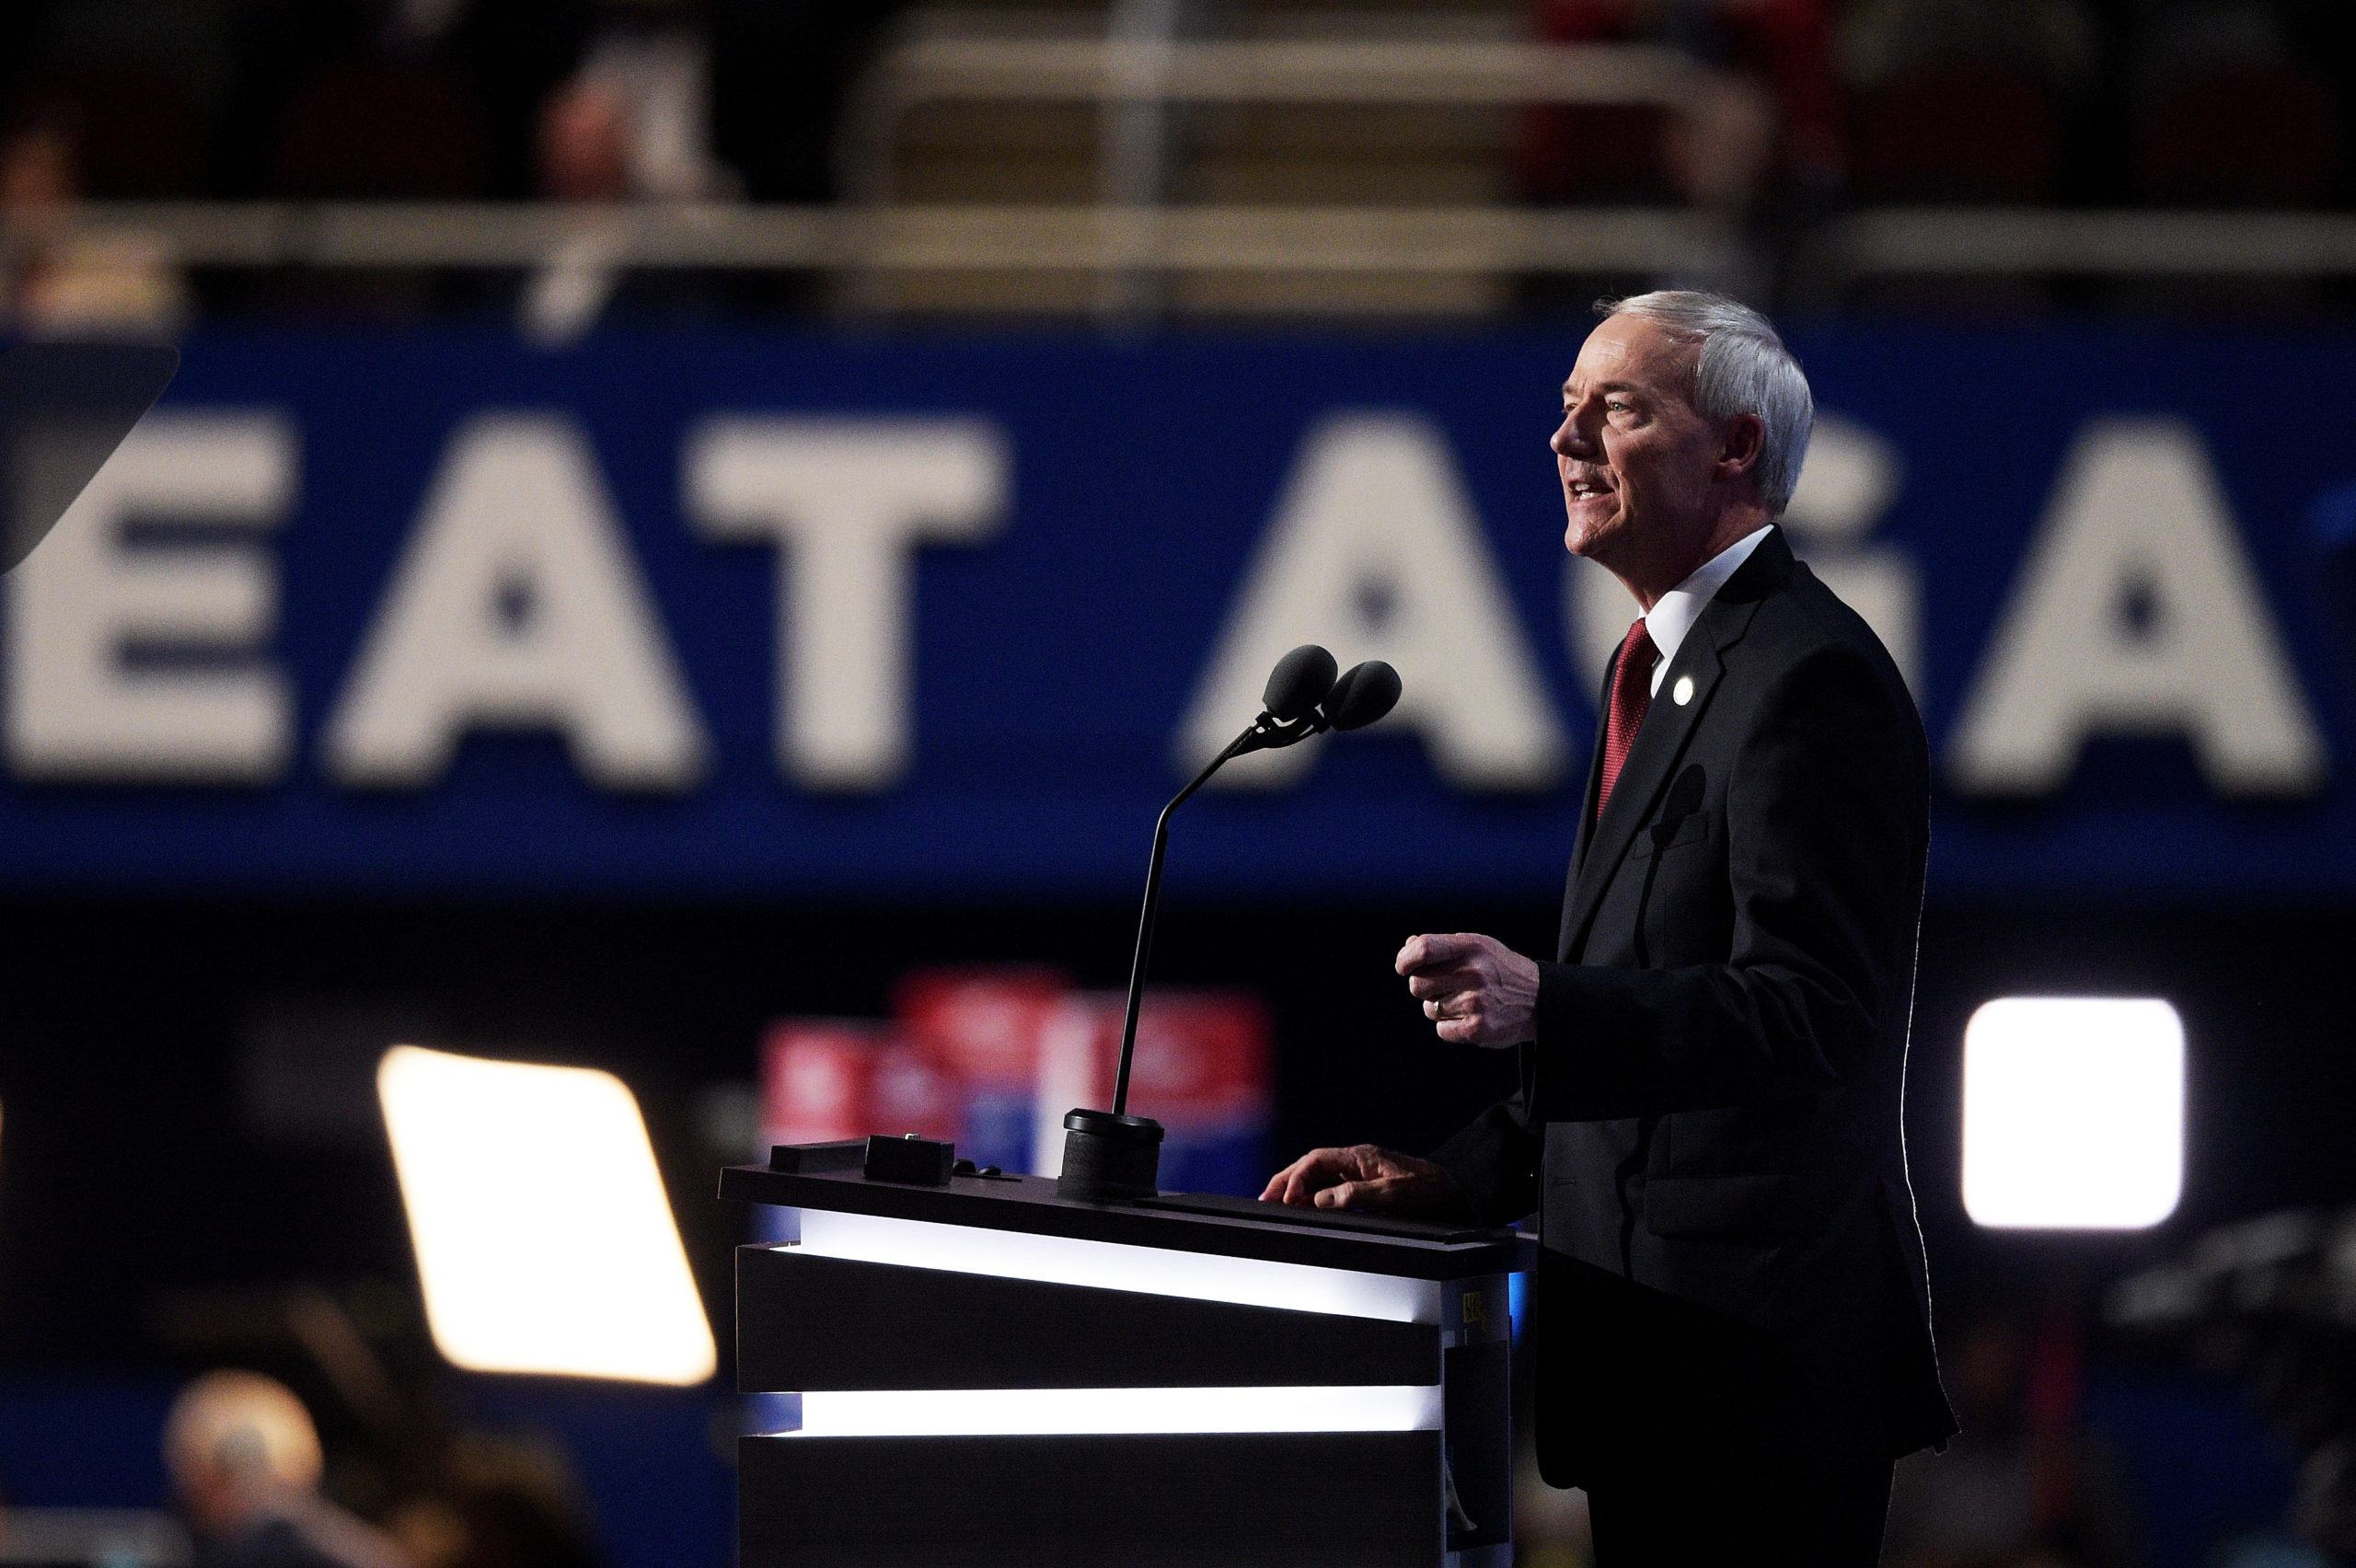 CLEVELAND, OH - JULY 19: Gov. Asa Hutchinson (R-AR) delivers a speech on the second day of the Republican National Convention on July 19, 2016 at the Quicken Loans Arena in Cleveland, Ohio. Republican presidential candidate Donald Trump received the number of votes needed to secure the party's nomination. An estimated 50,000 people are expected in Cleveland, including hundreds of protesters and members of the media. The four-day Republican National Convention kicked off on July 18. (Photo by Jeff Swensen/Getty Images)